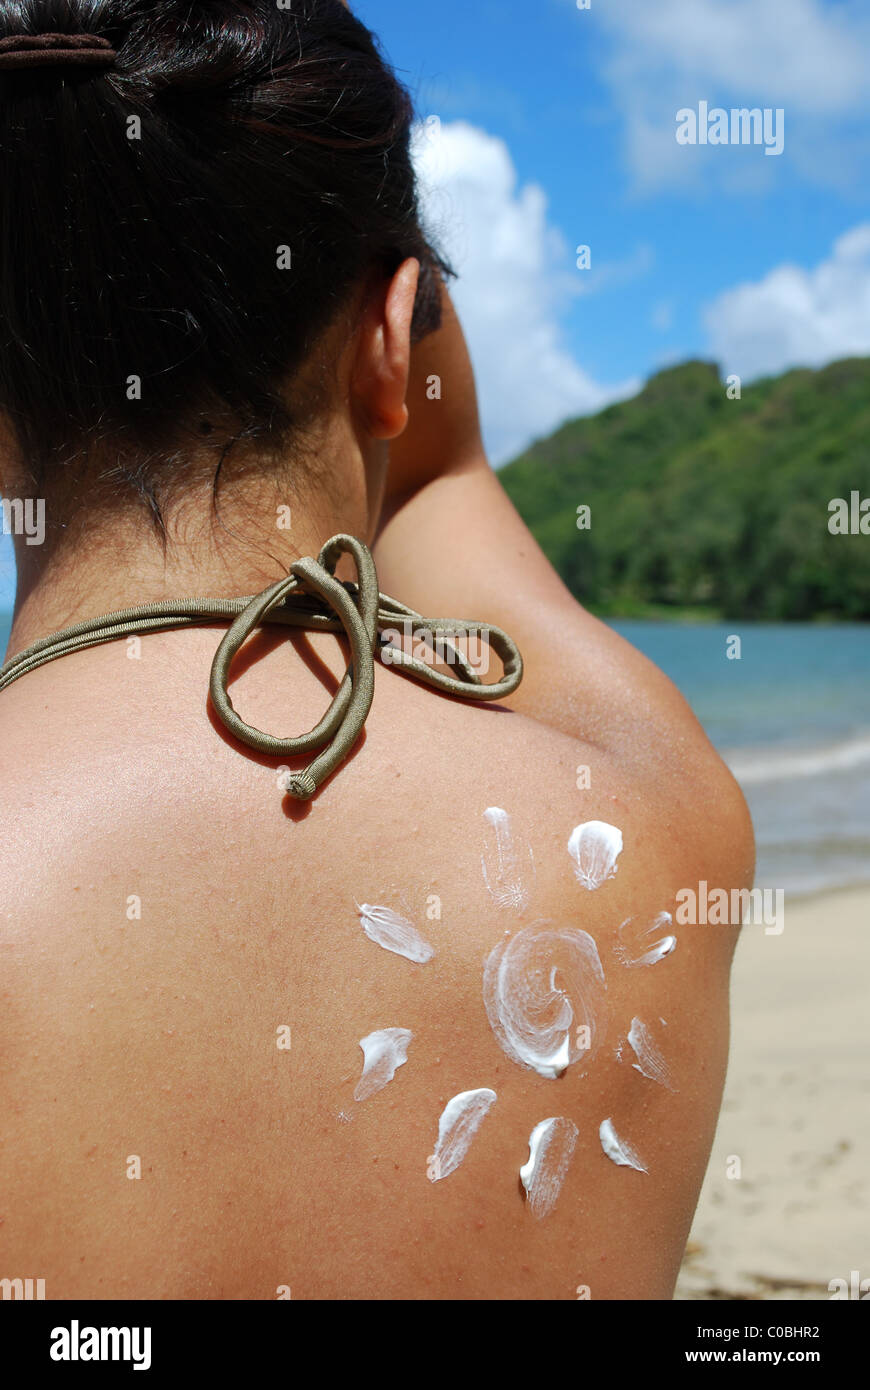 Sunscreen sun. Woman on beach in swimsuit with sun drawn in sunblock on shoulder. Oahu Hawaii. - Stock Image